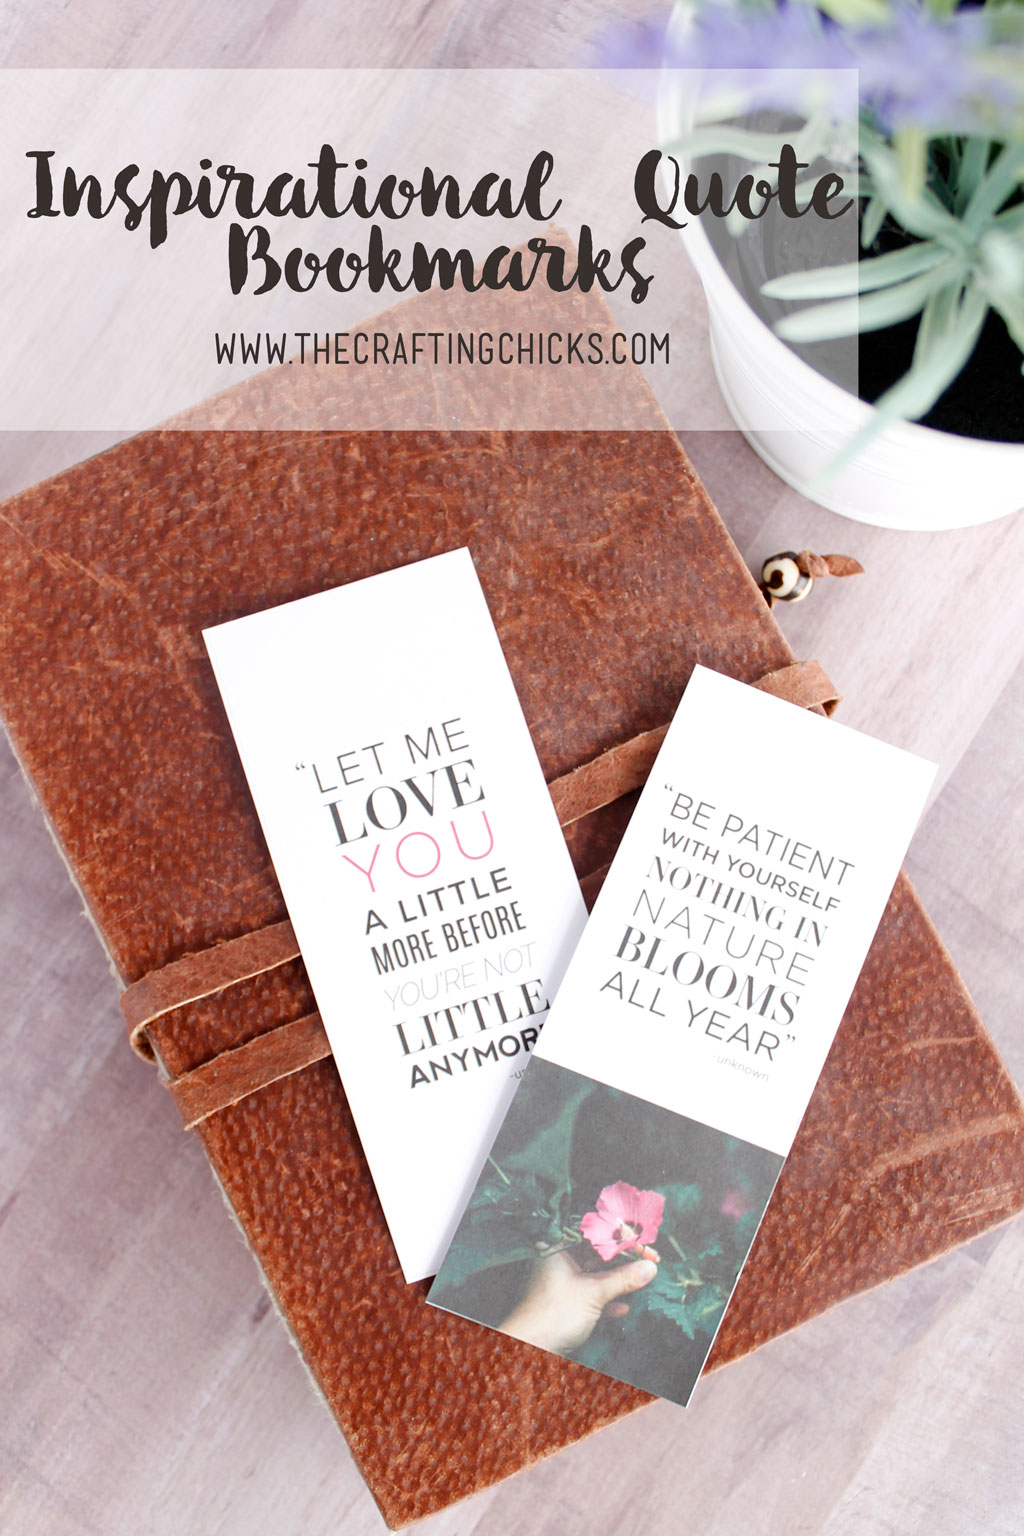 photograph about Free Printable Bookmarks With Quotes called Inspirational Estimates: No cost Printable Bookmarks - The